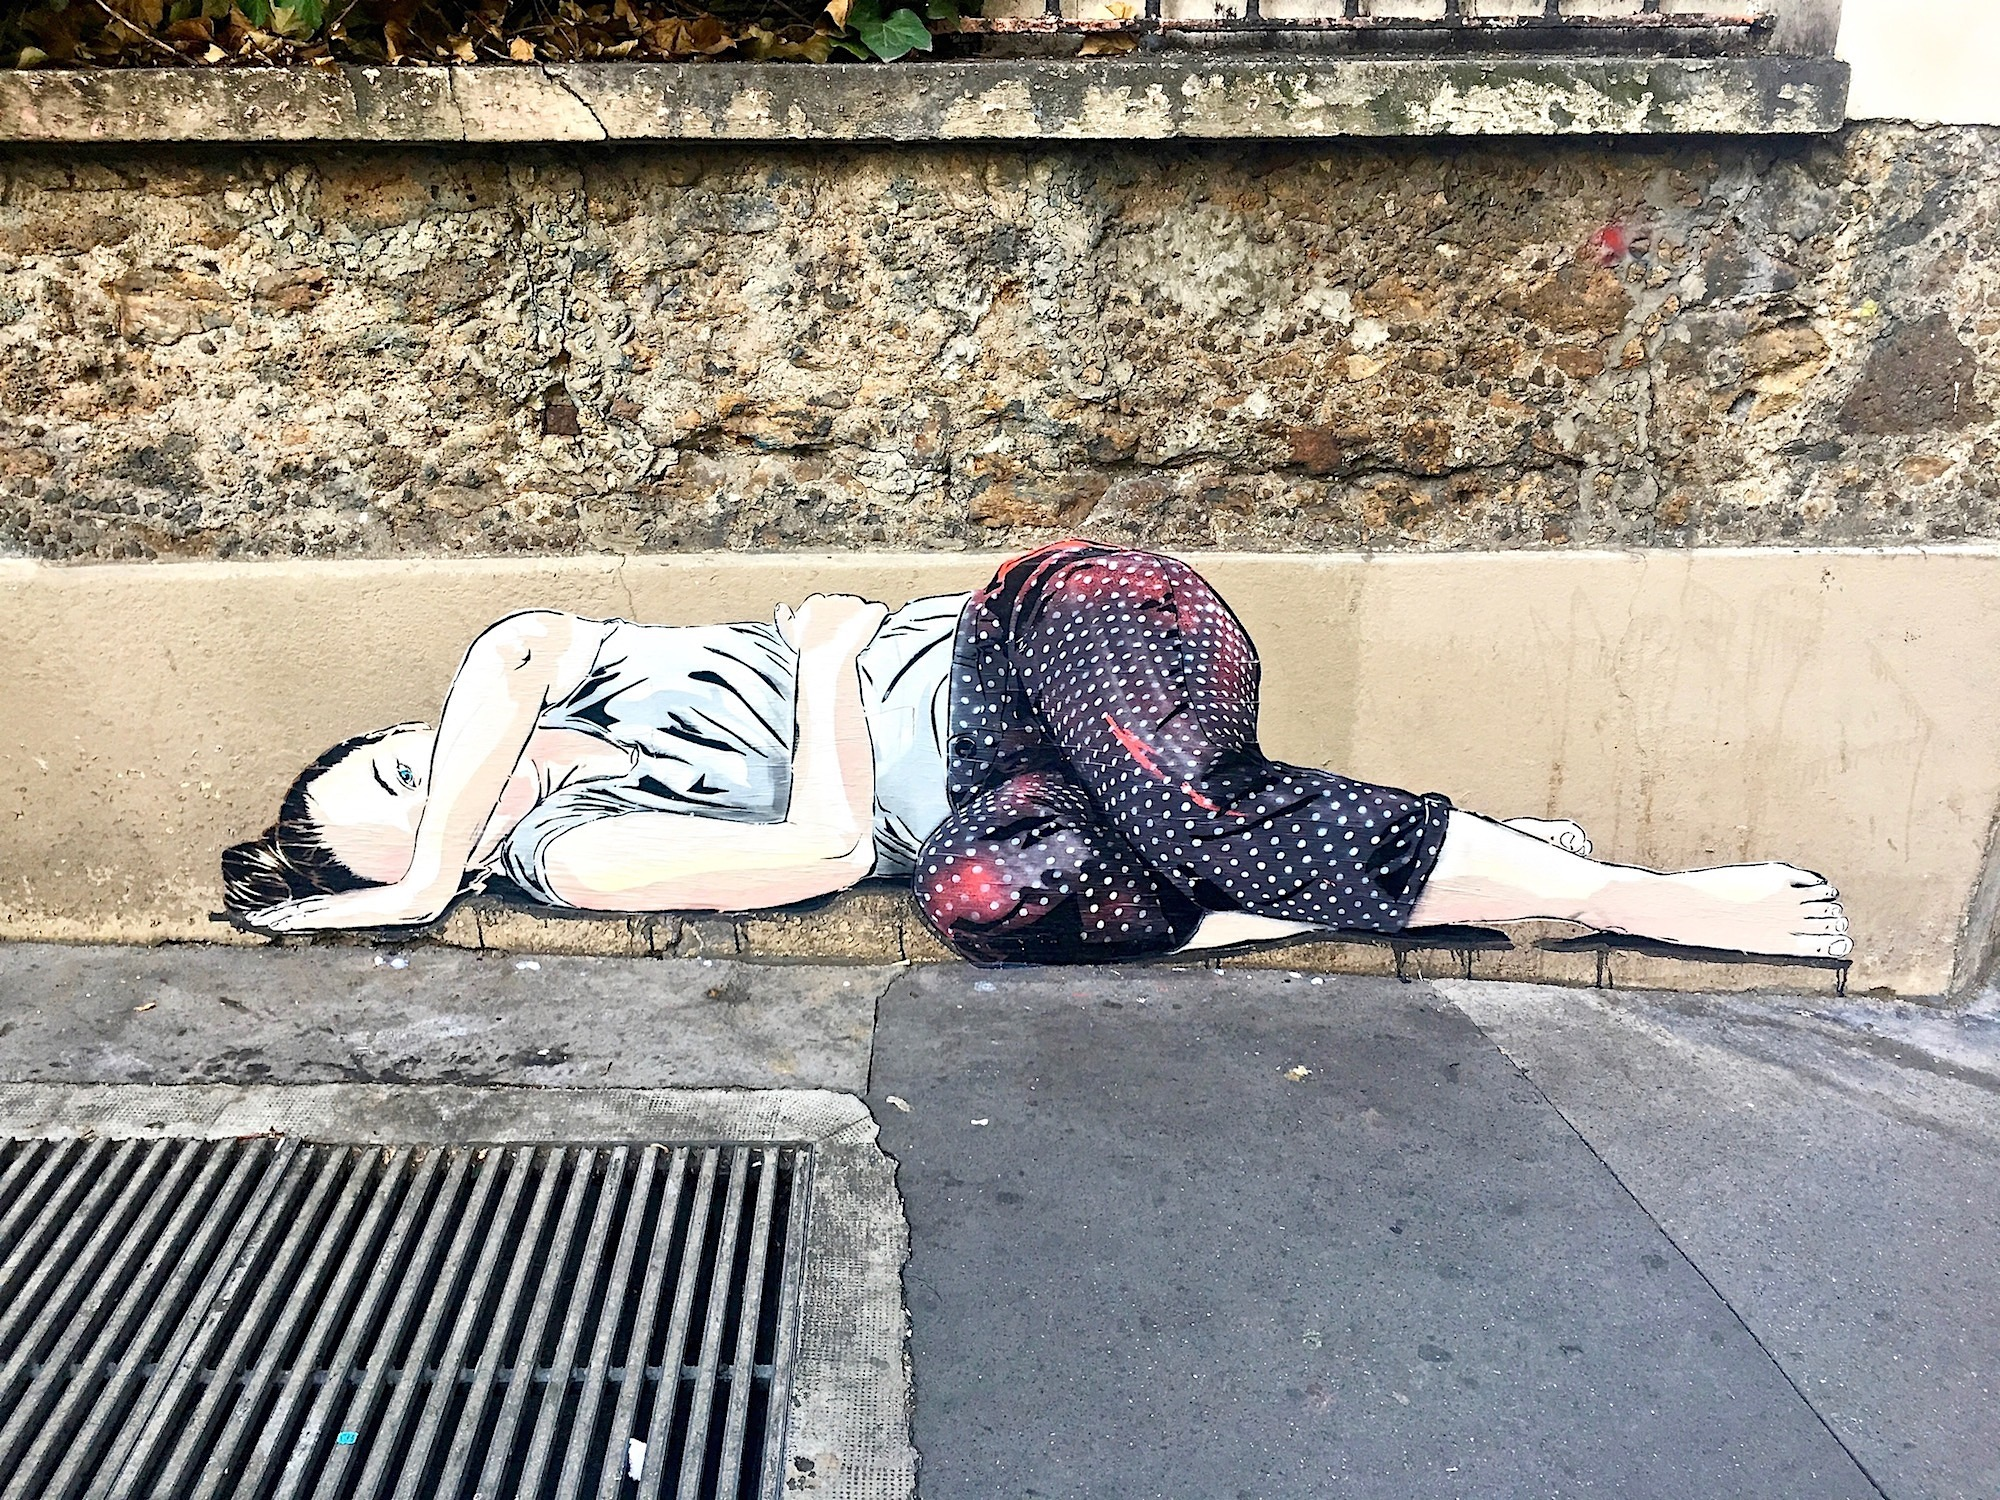 Paris street art also includes a lot of stencil art by artists like Jana und Js, like this piece of a girl lying on the floor.